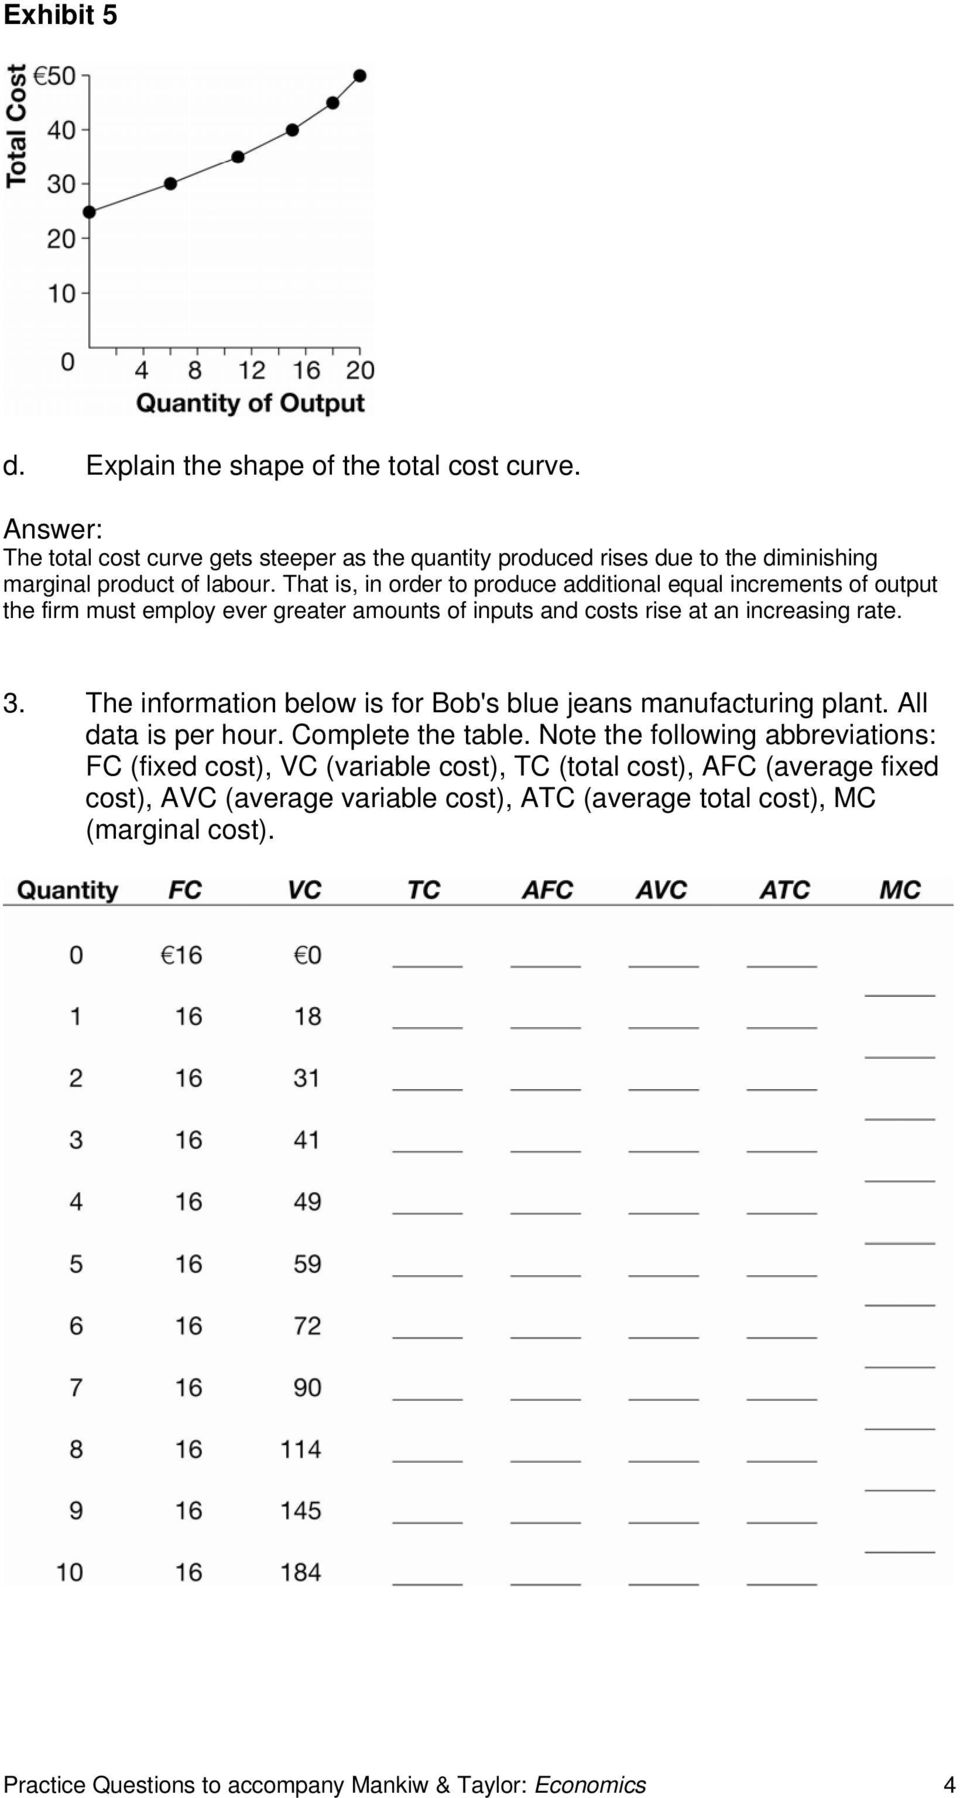 The information below is for Bob's blue jeans manufacturing plant. All data is per hour. Complete the table.